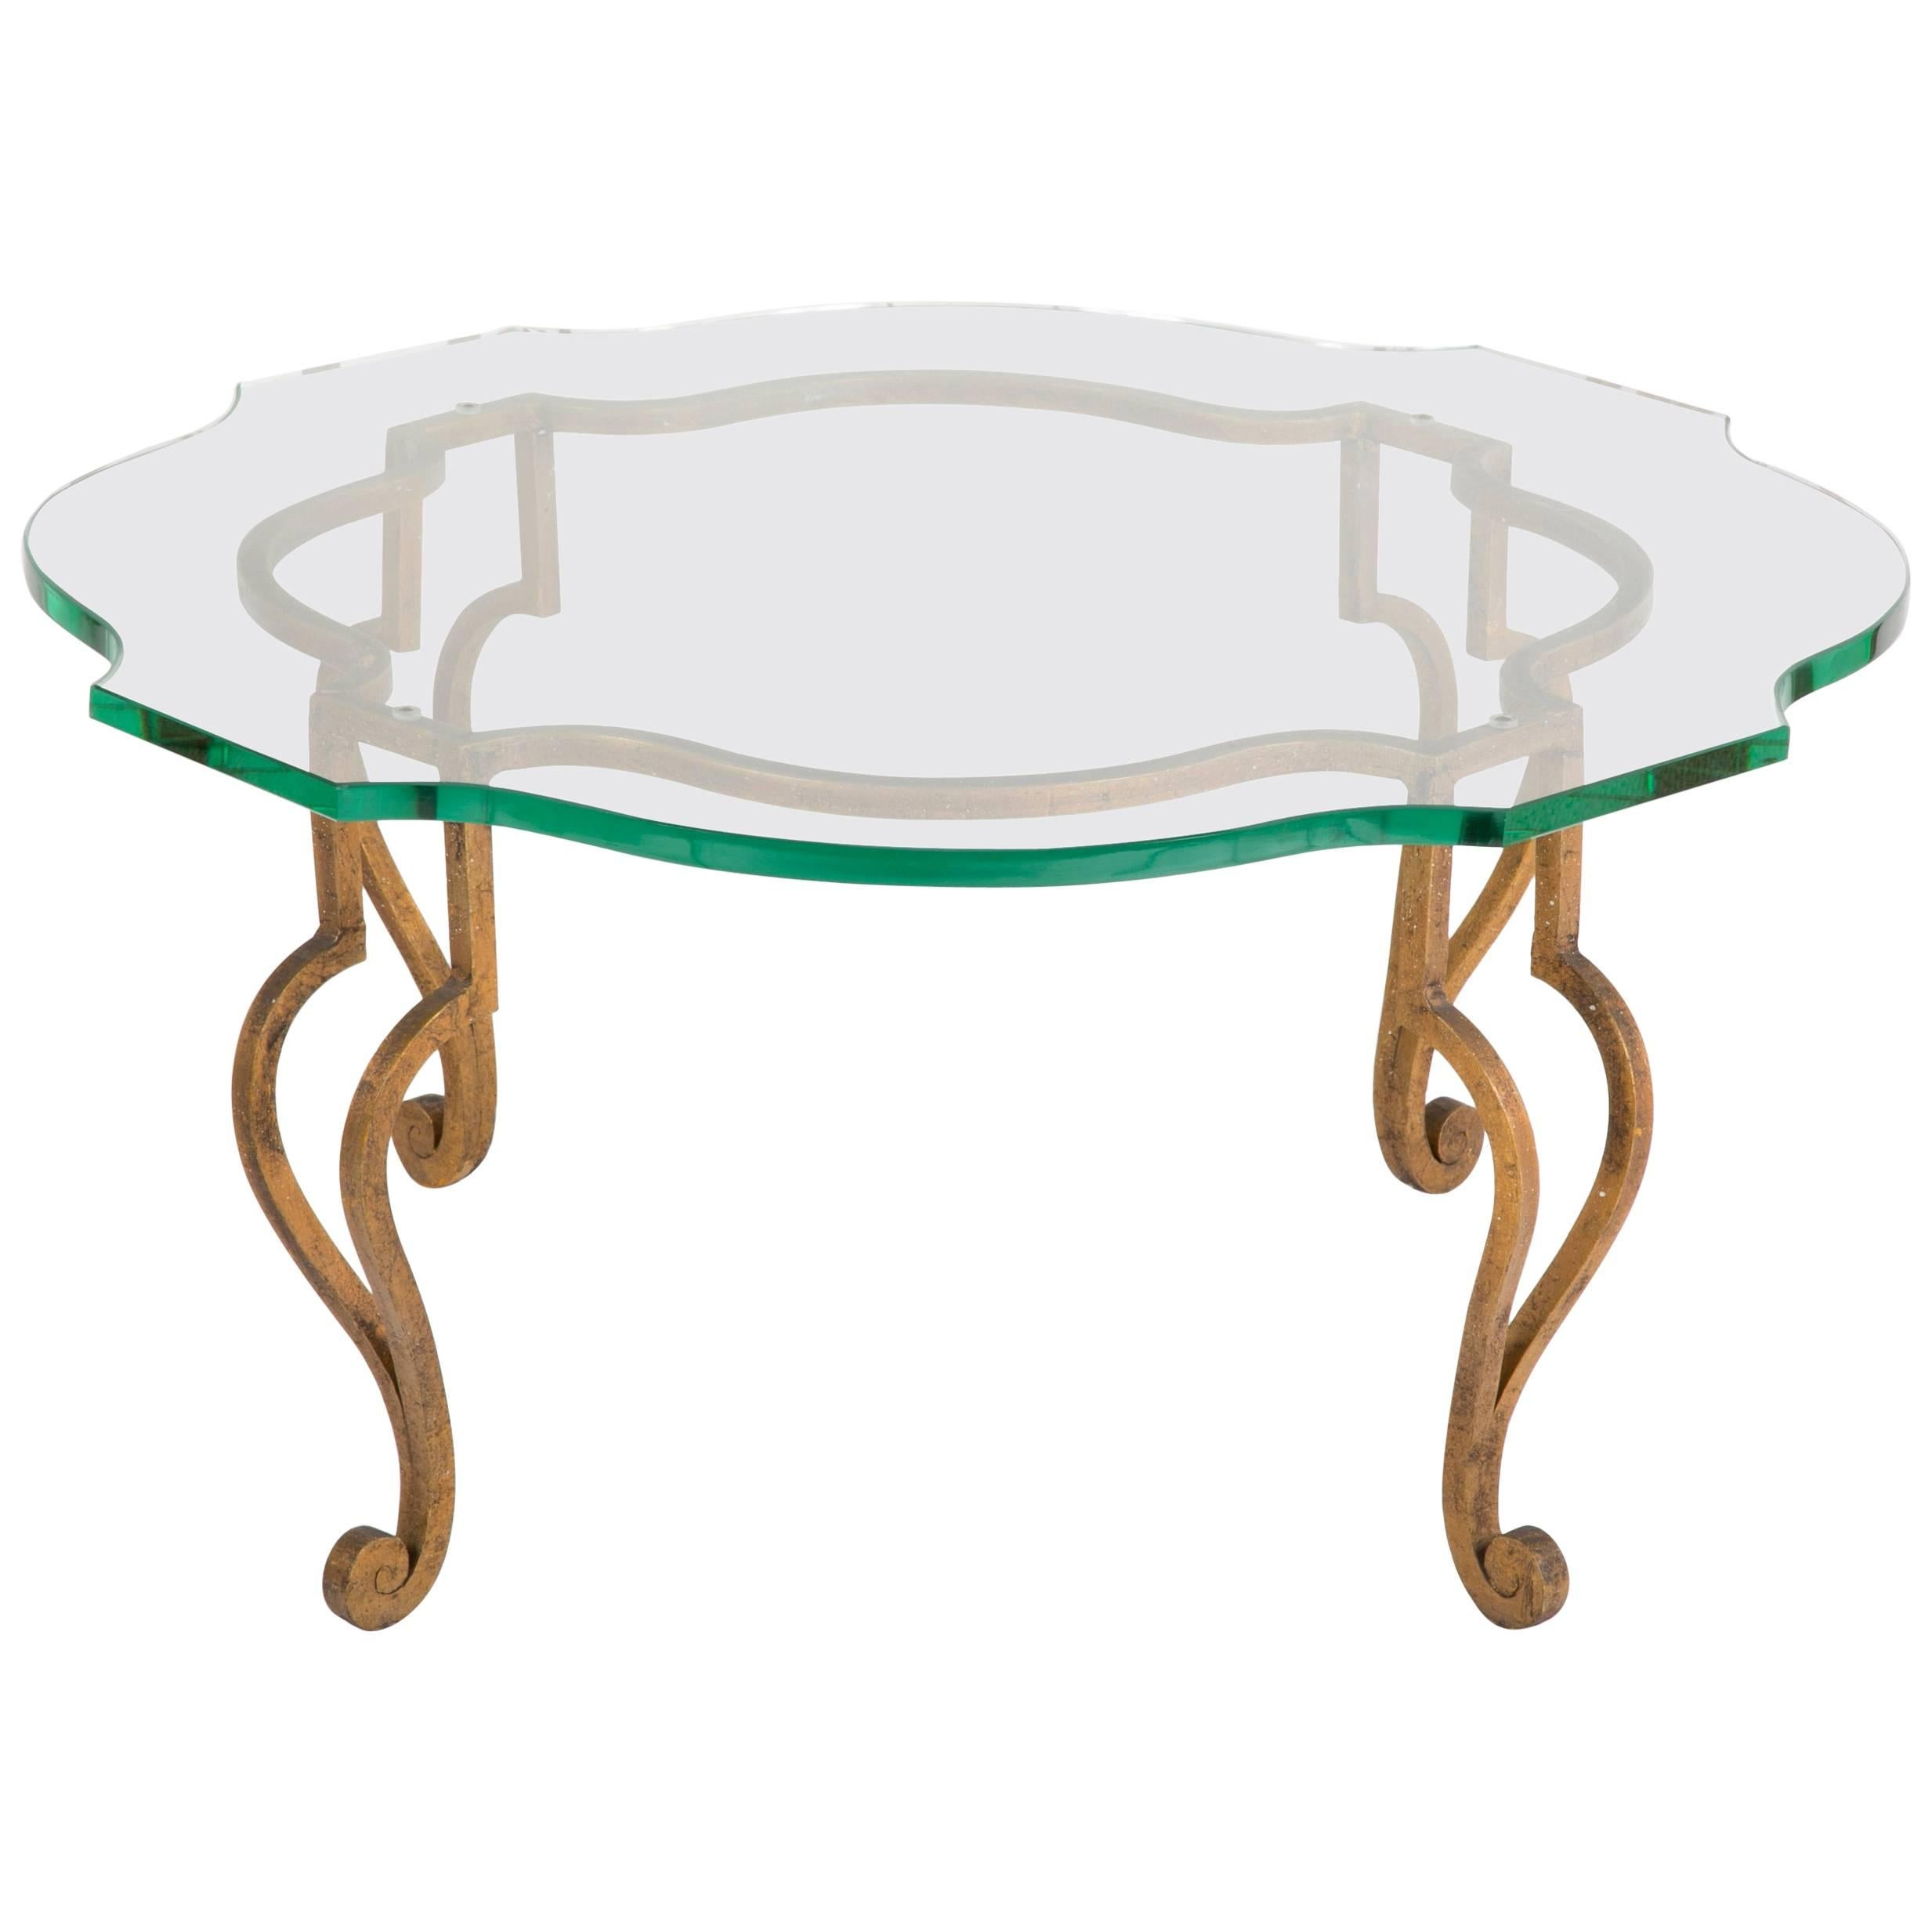 Maison Ramsey Gilt Iron and Articulated Glass Coffee Table